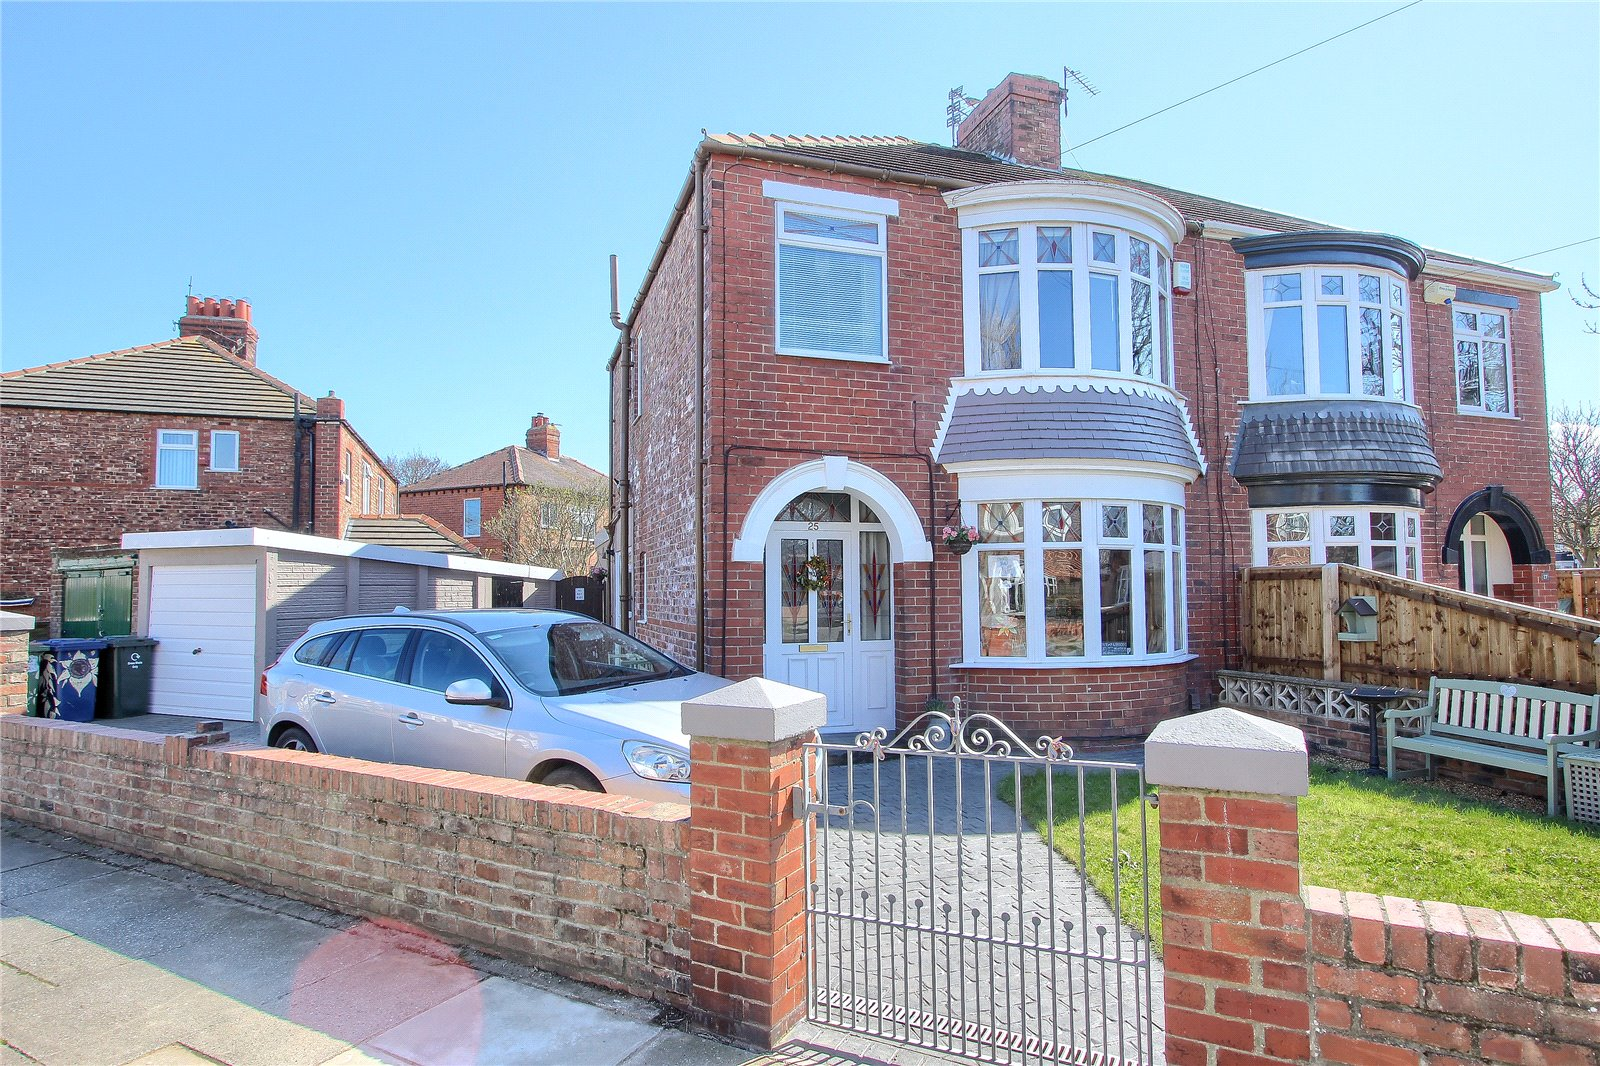 3 bed house for sale in Chester Road, Redcar - Property Image 1